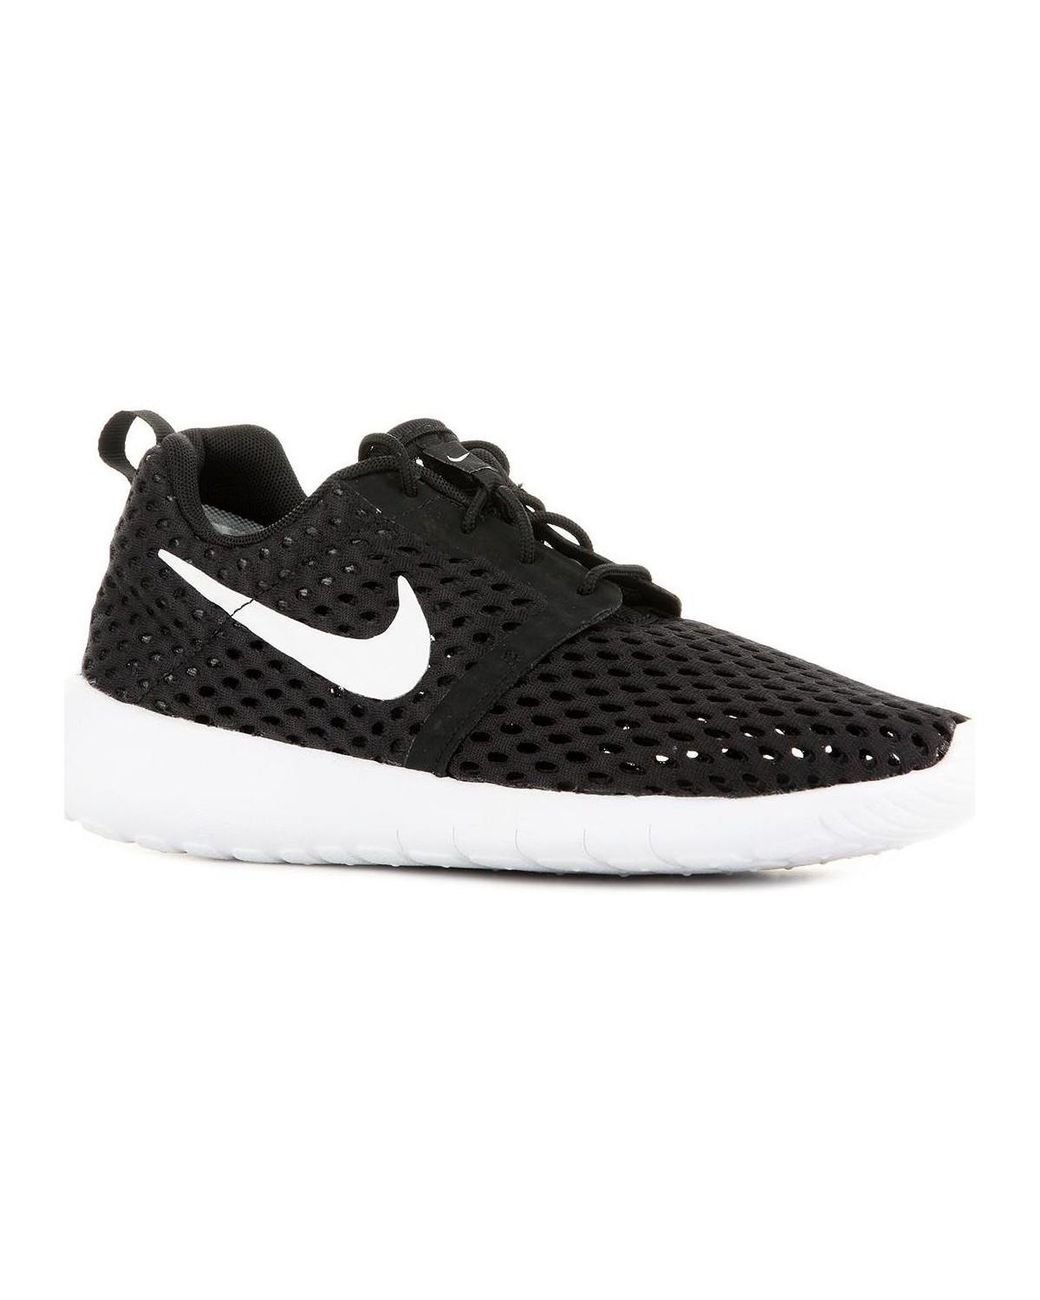 6207766201d3 Nike. Roshe One Flight Weight 705485-008 Women s Shoes (trainers) In Black